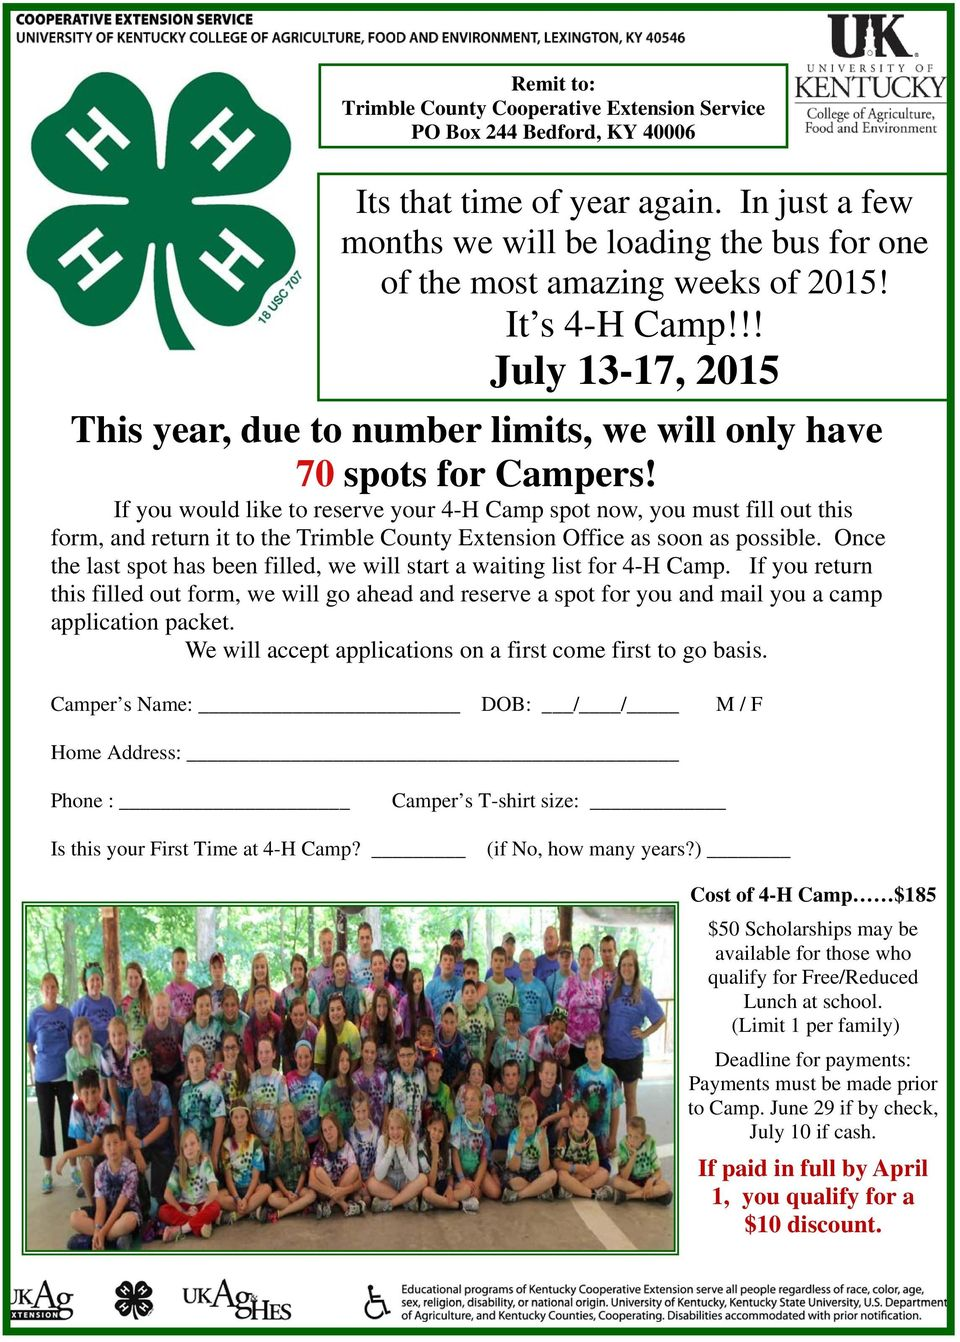 If you would like to reserve your 4-H Camp spot now, you must fill out this form, and return it to the Trimble County Extension Office as soon as possible.